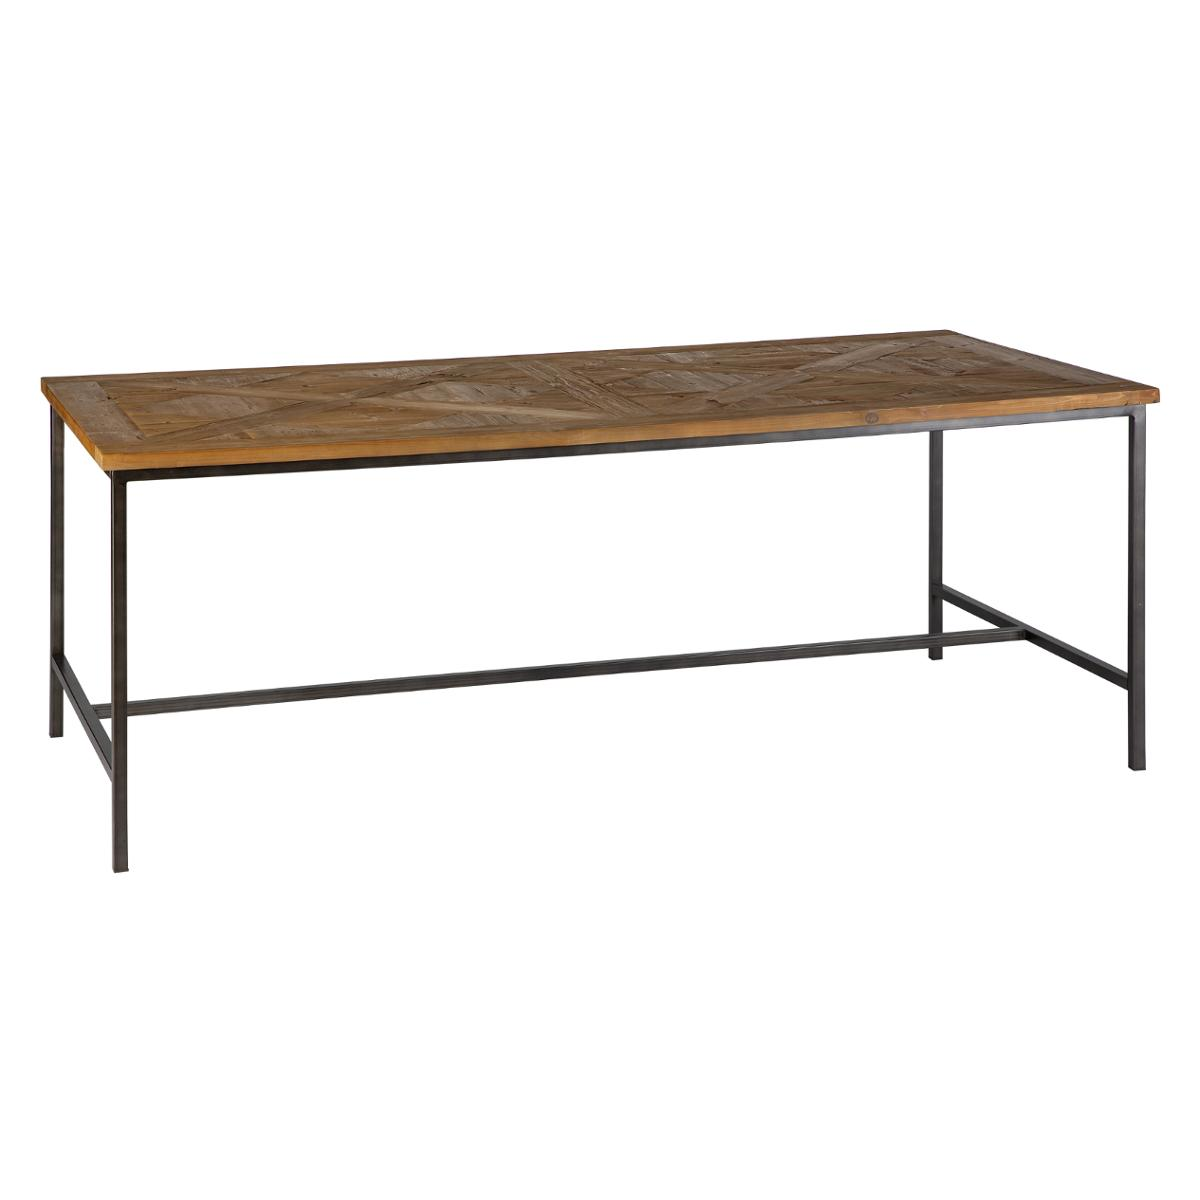 Table Diner 200 x 100 cm Corte - Atmosphera